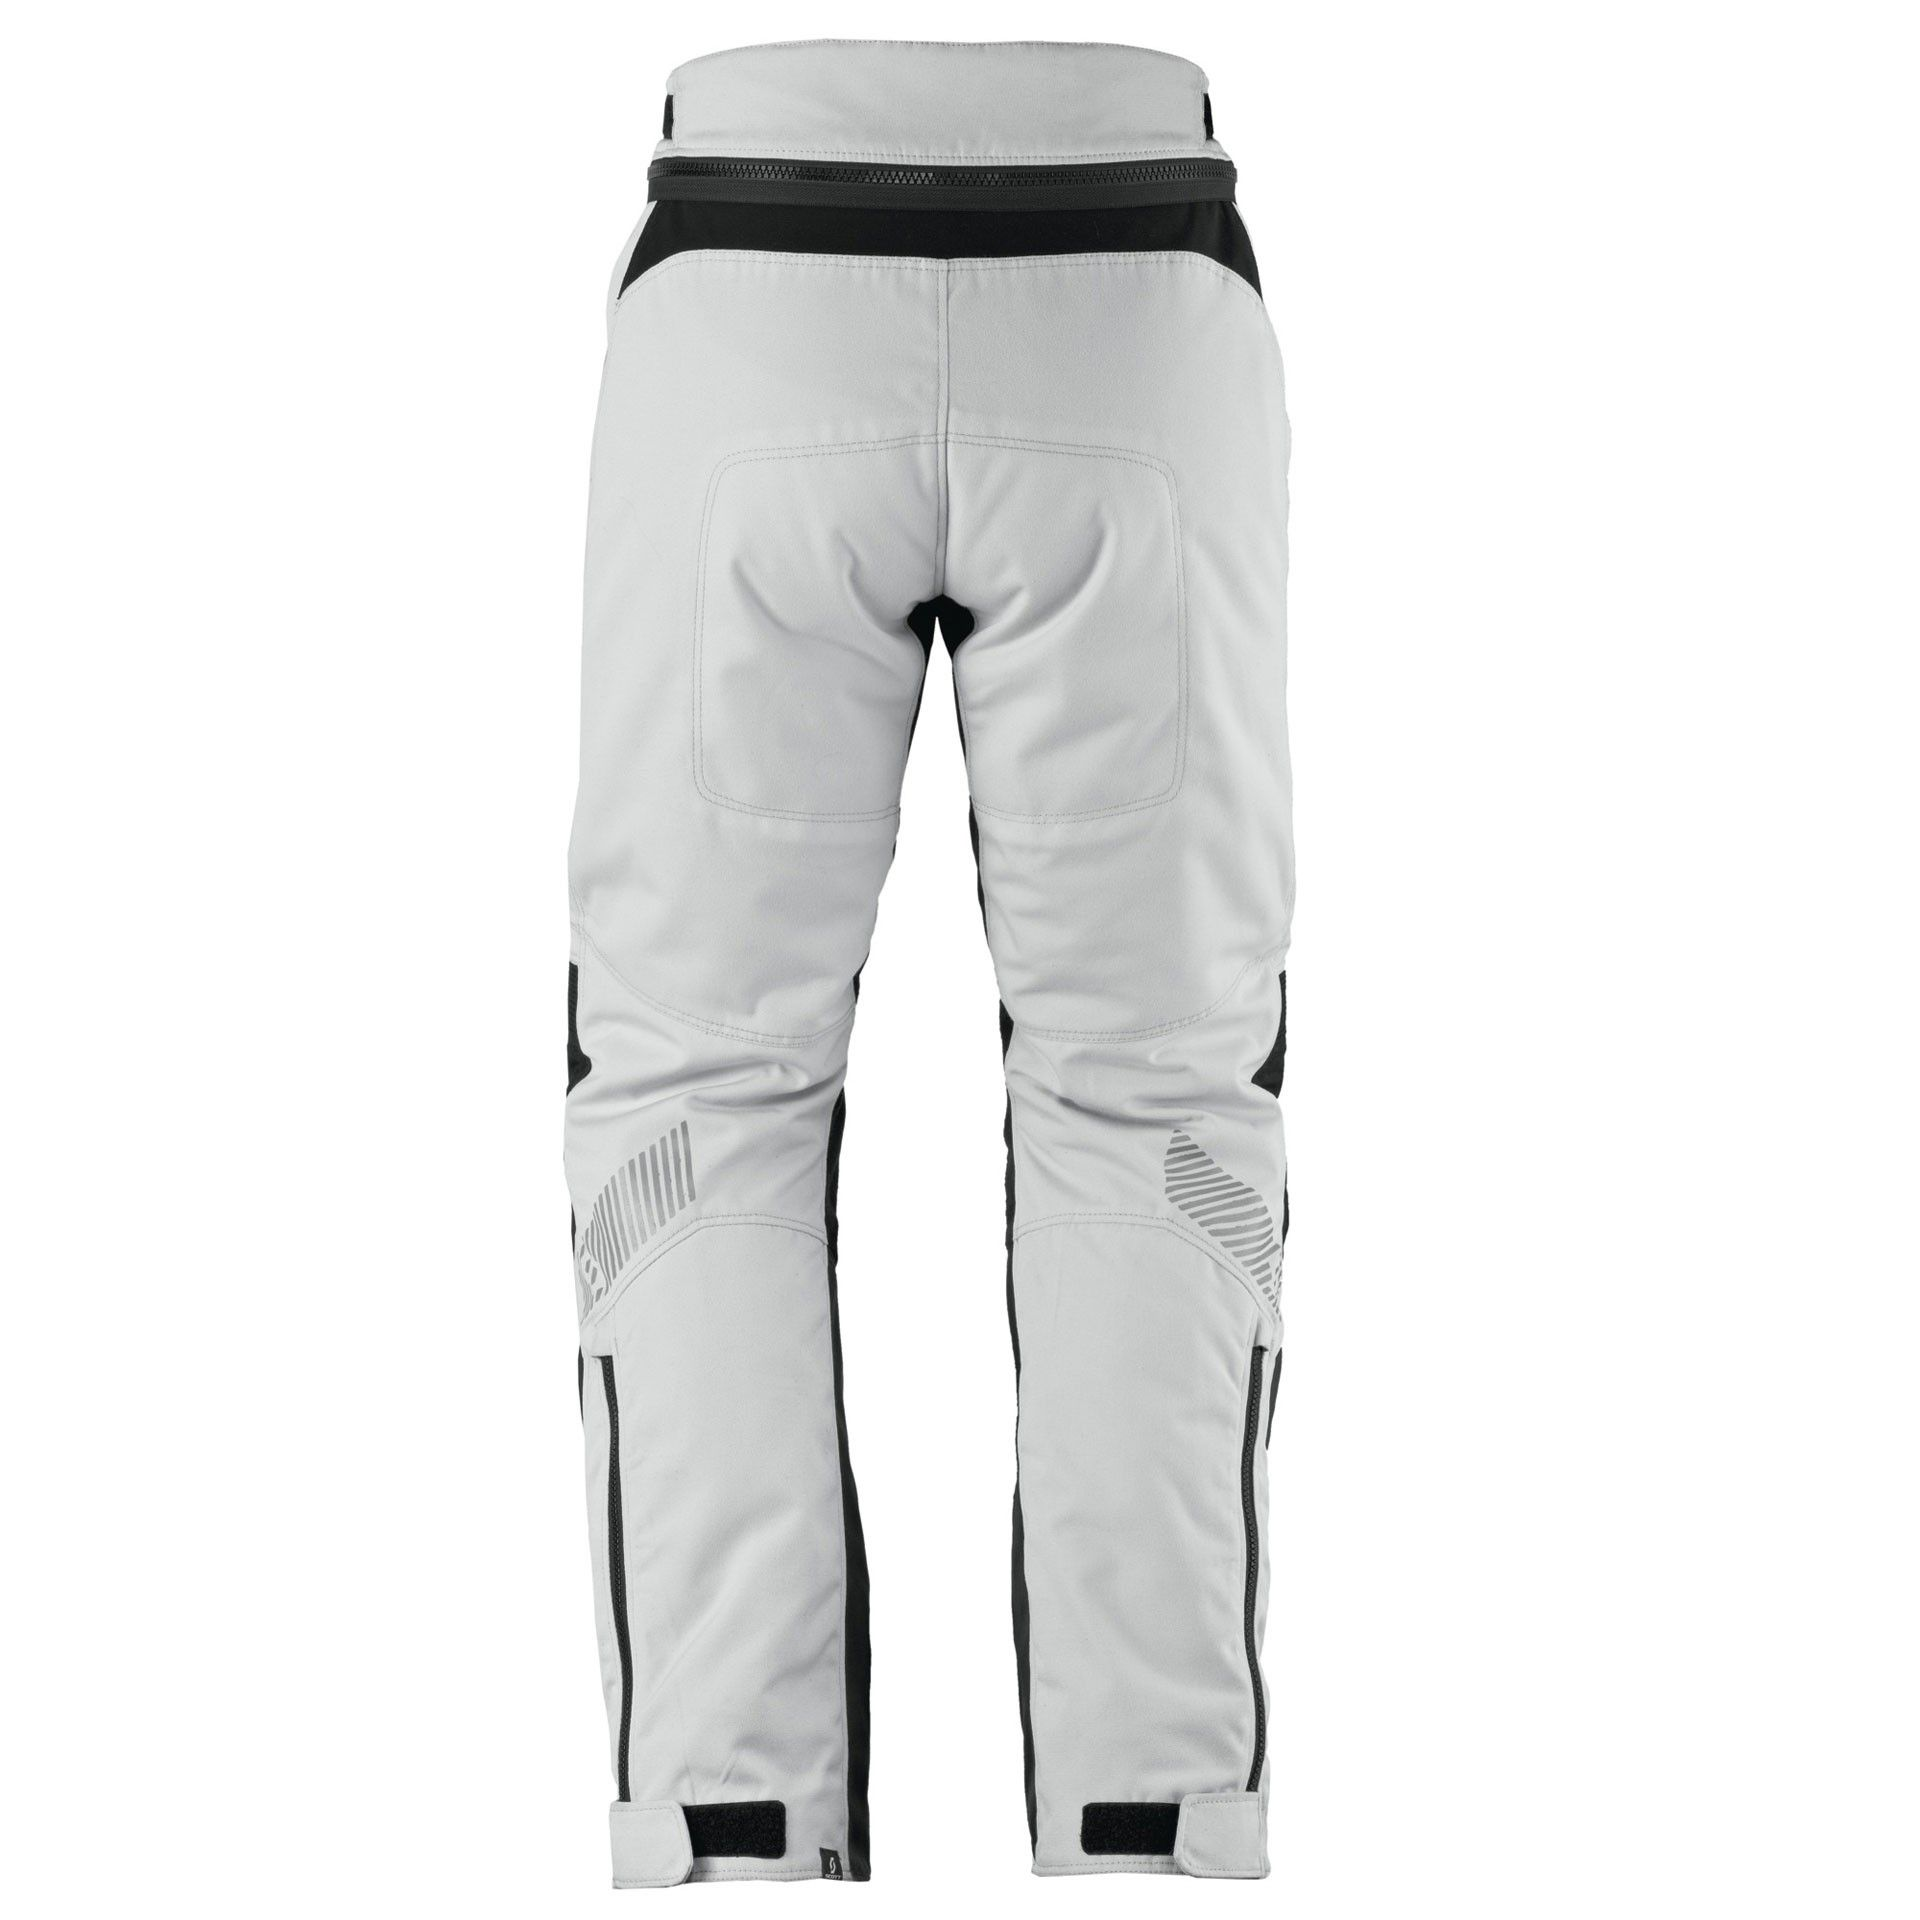 Scott ALL TERRAIN Pro DP Men Pants (WHT)